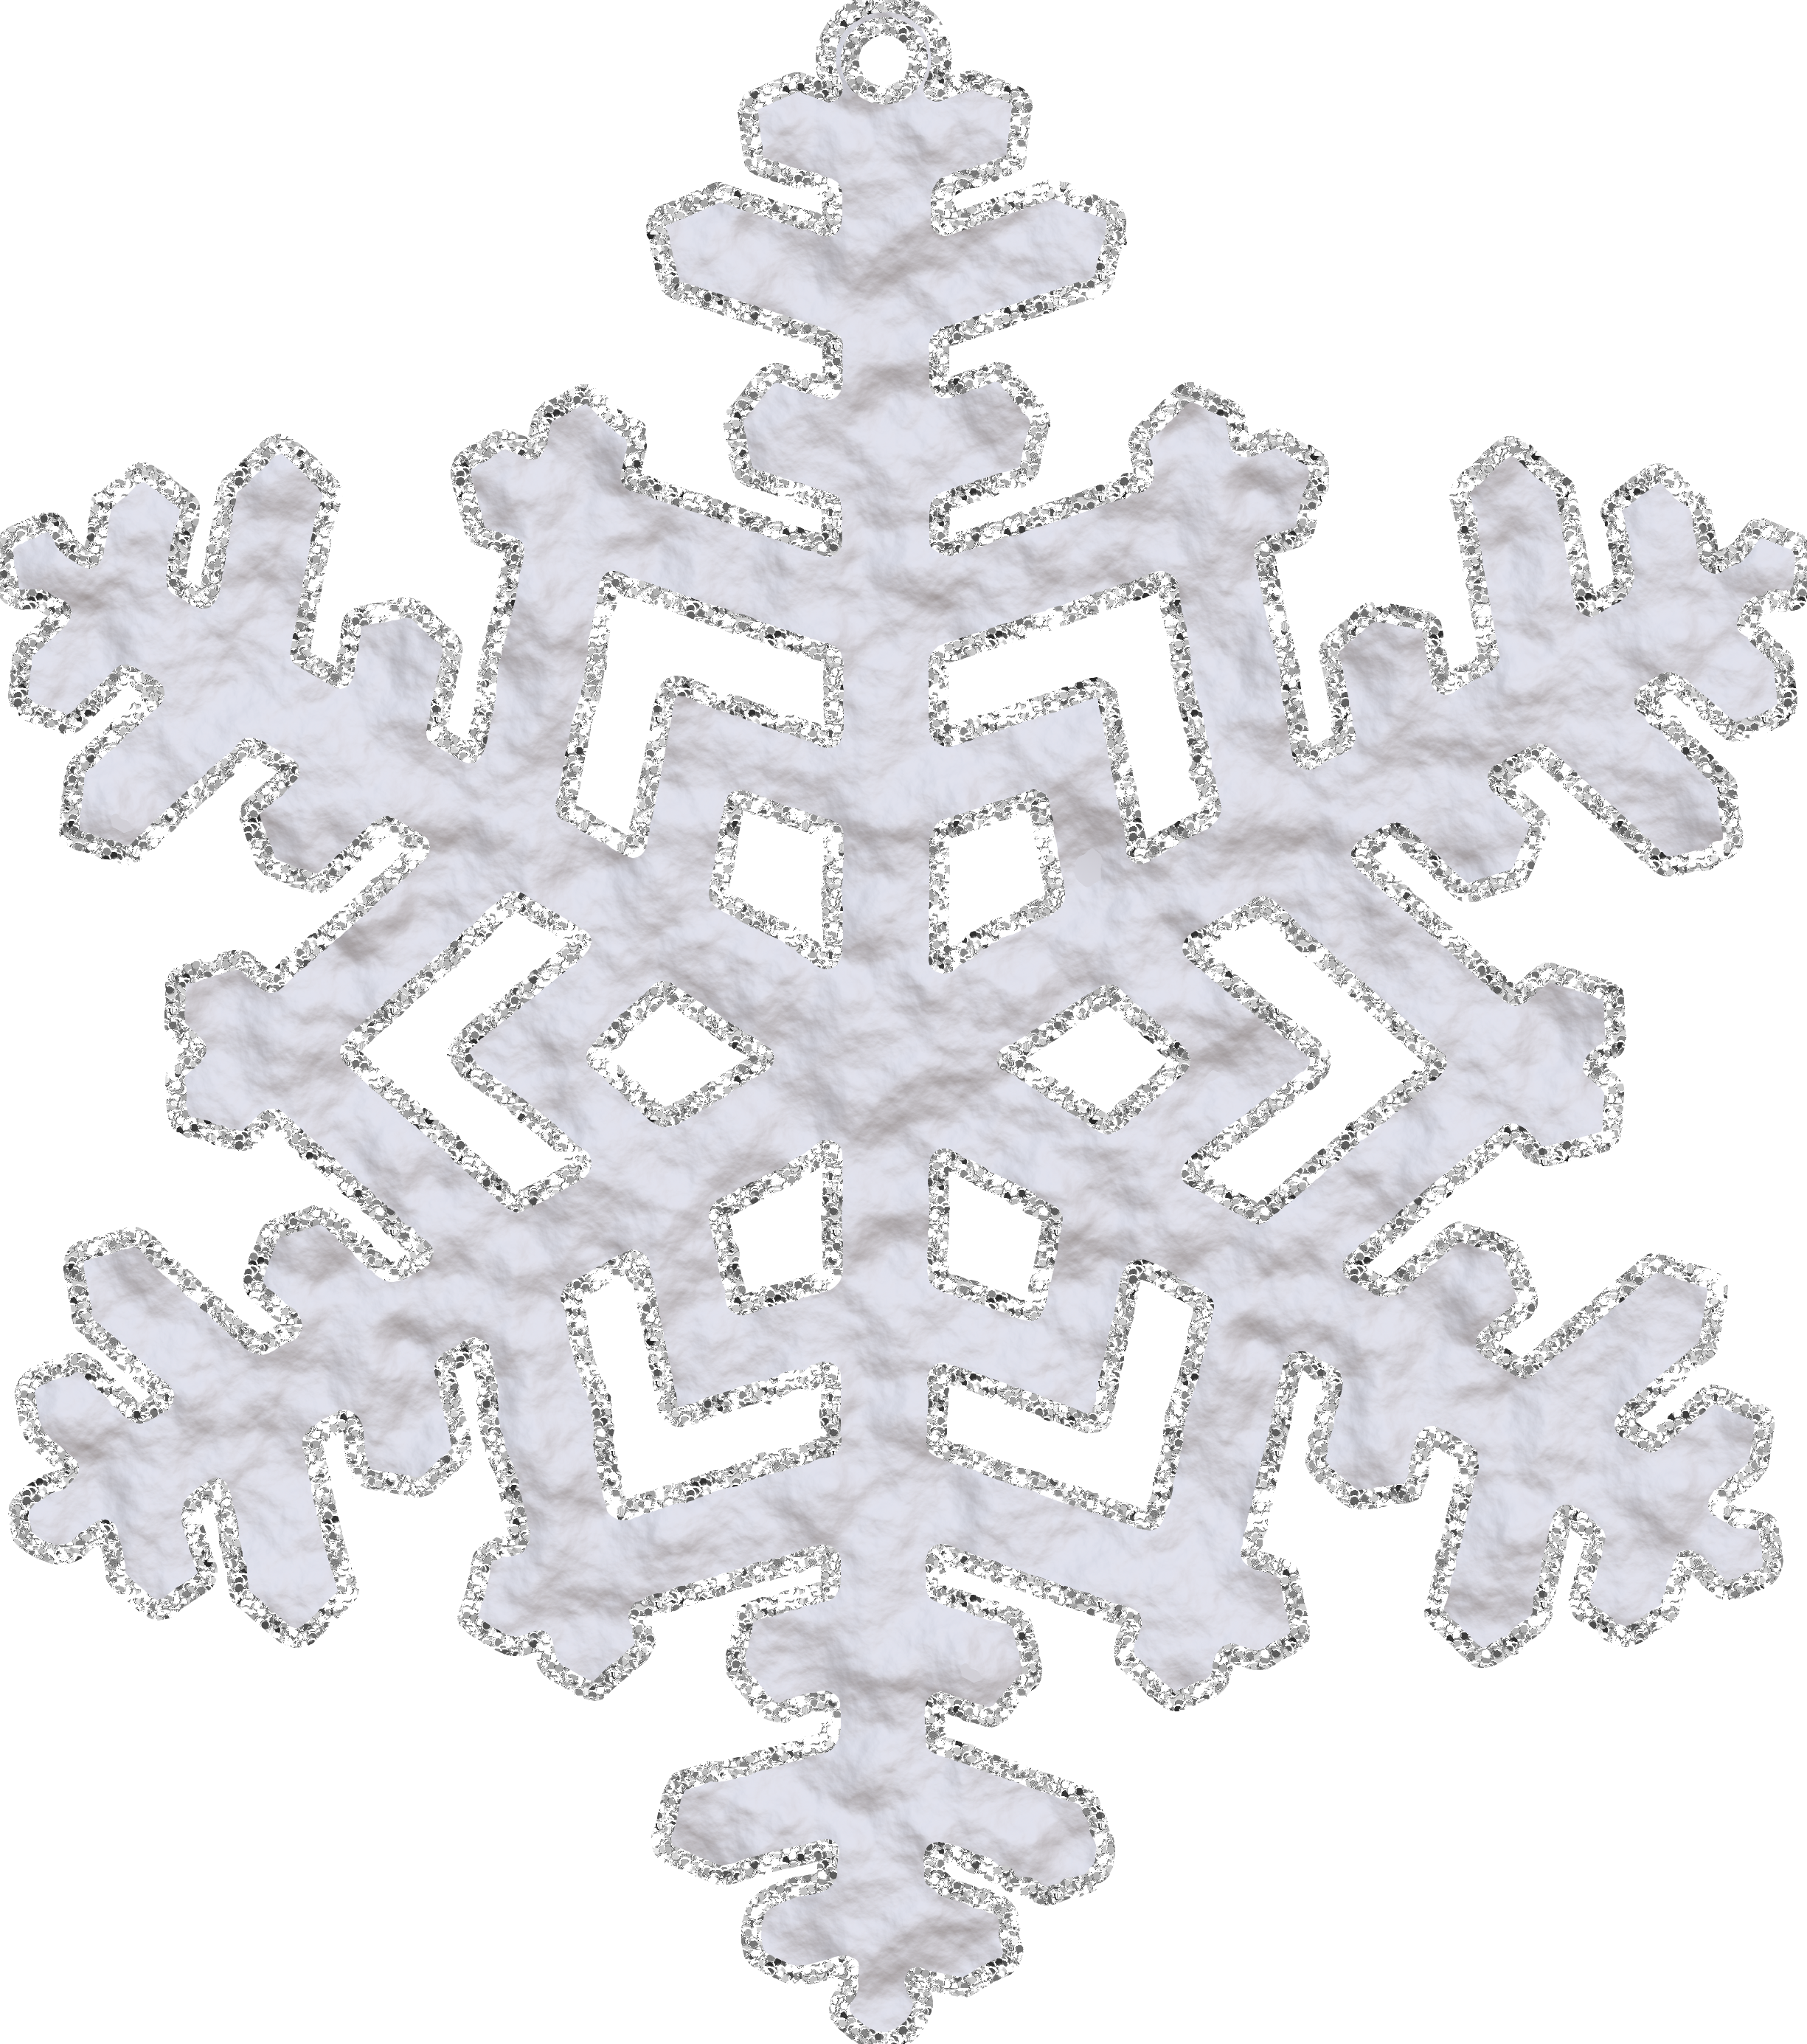 Snowflake with Glitter PNG Image